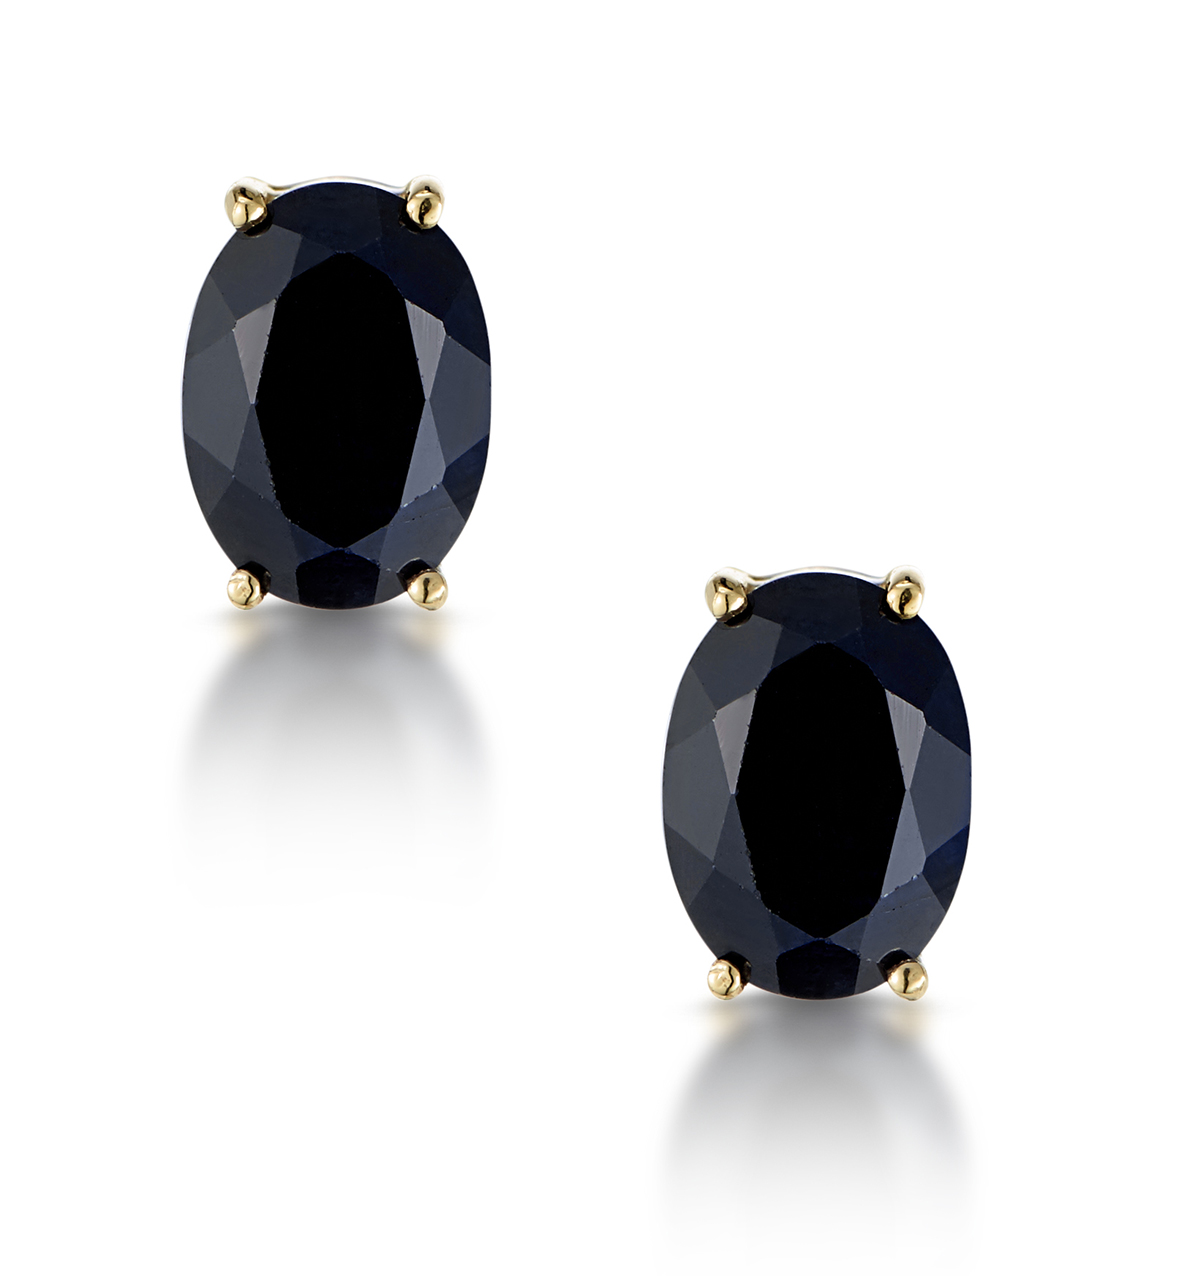 Sapphire 7mm x 5mm 9K Yellow Gold Earrings